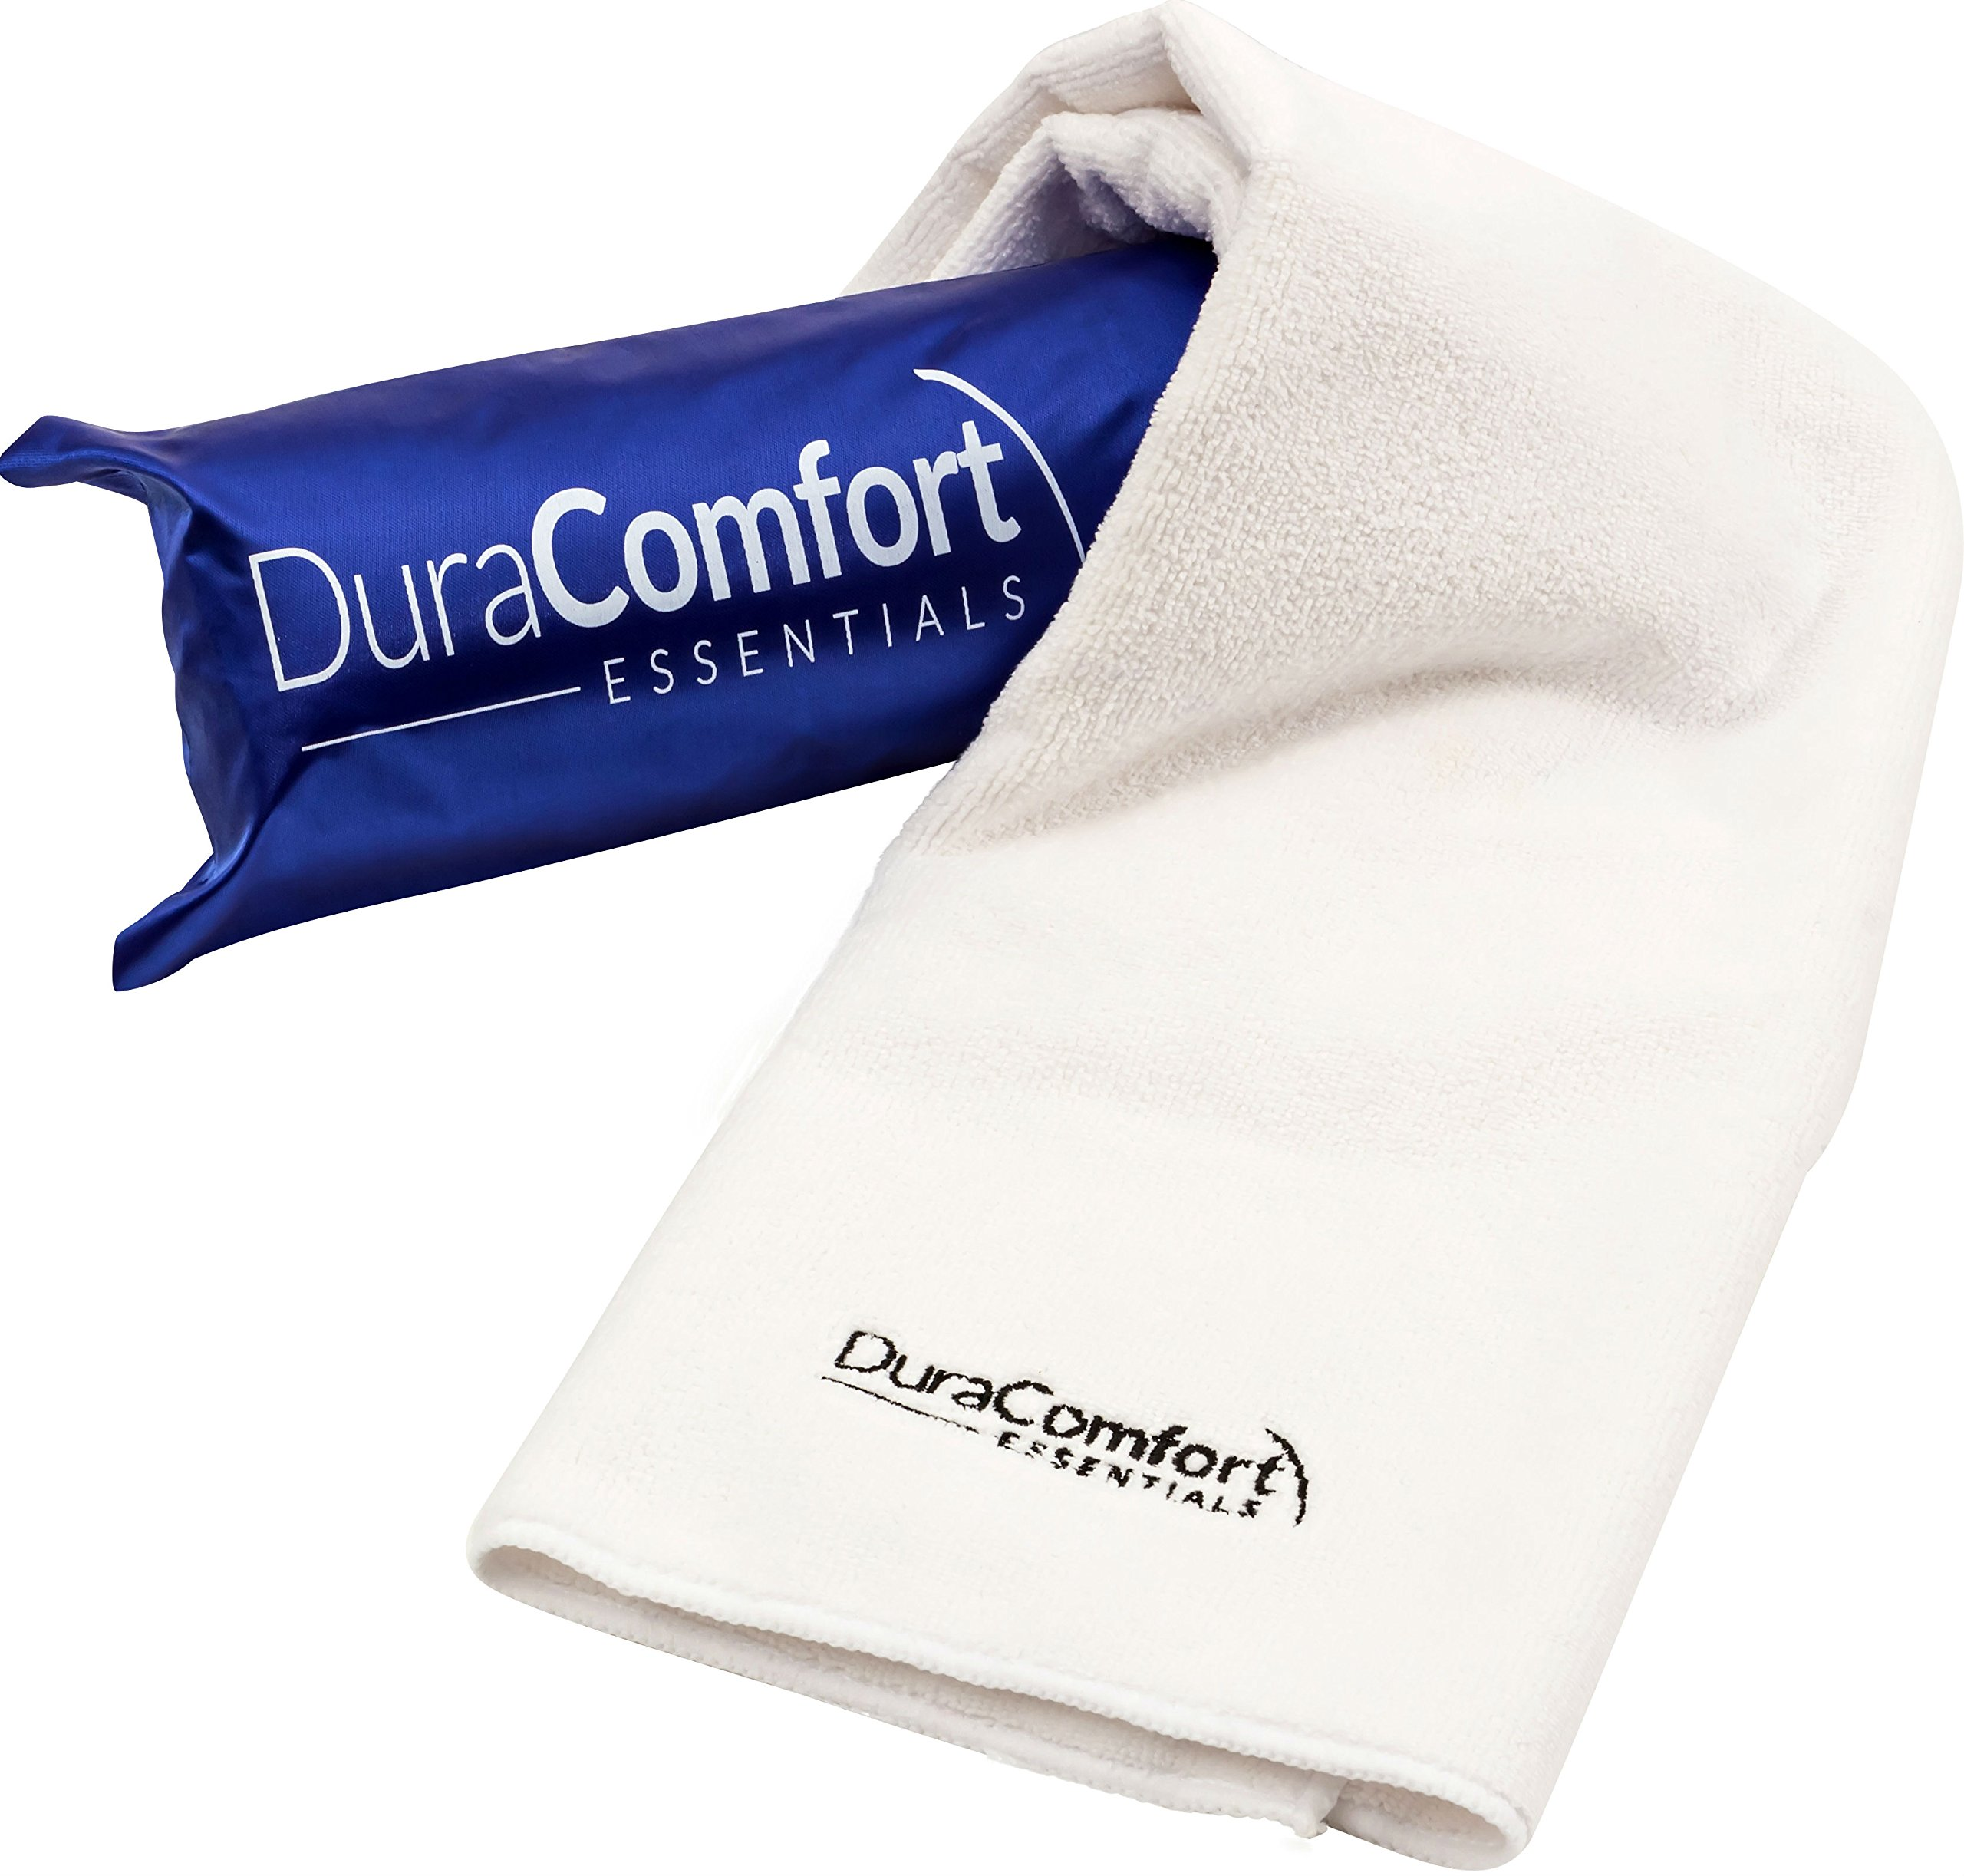 DuraComfort Essentials Super Absorbent Anti-Frizz Microfiber Hair Towel, Large 41 x 19-Inches by DuraComfort Essentials